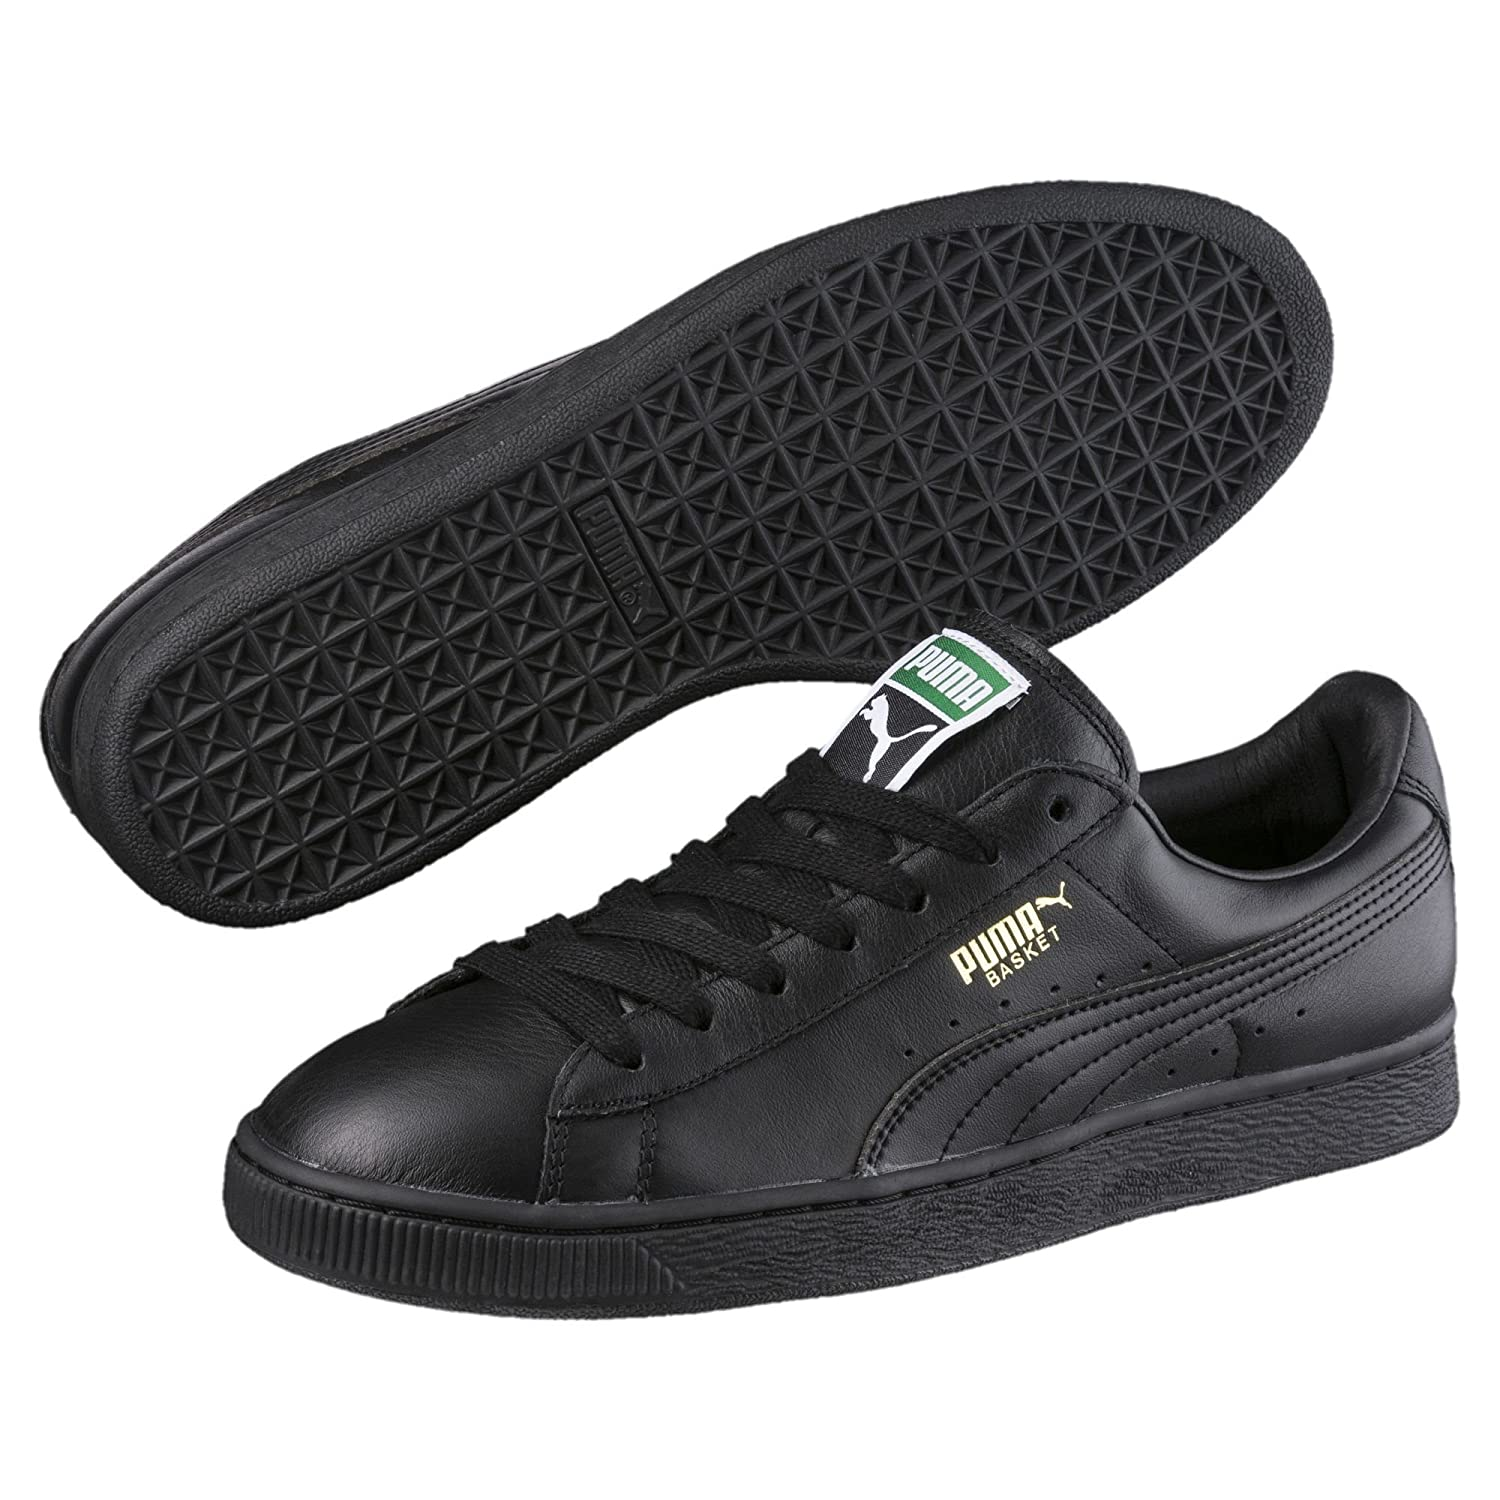 check out 55189 5ab96 Puma Men's Basket Classic LFS Leather Sneakers